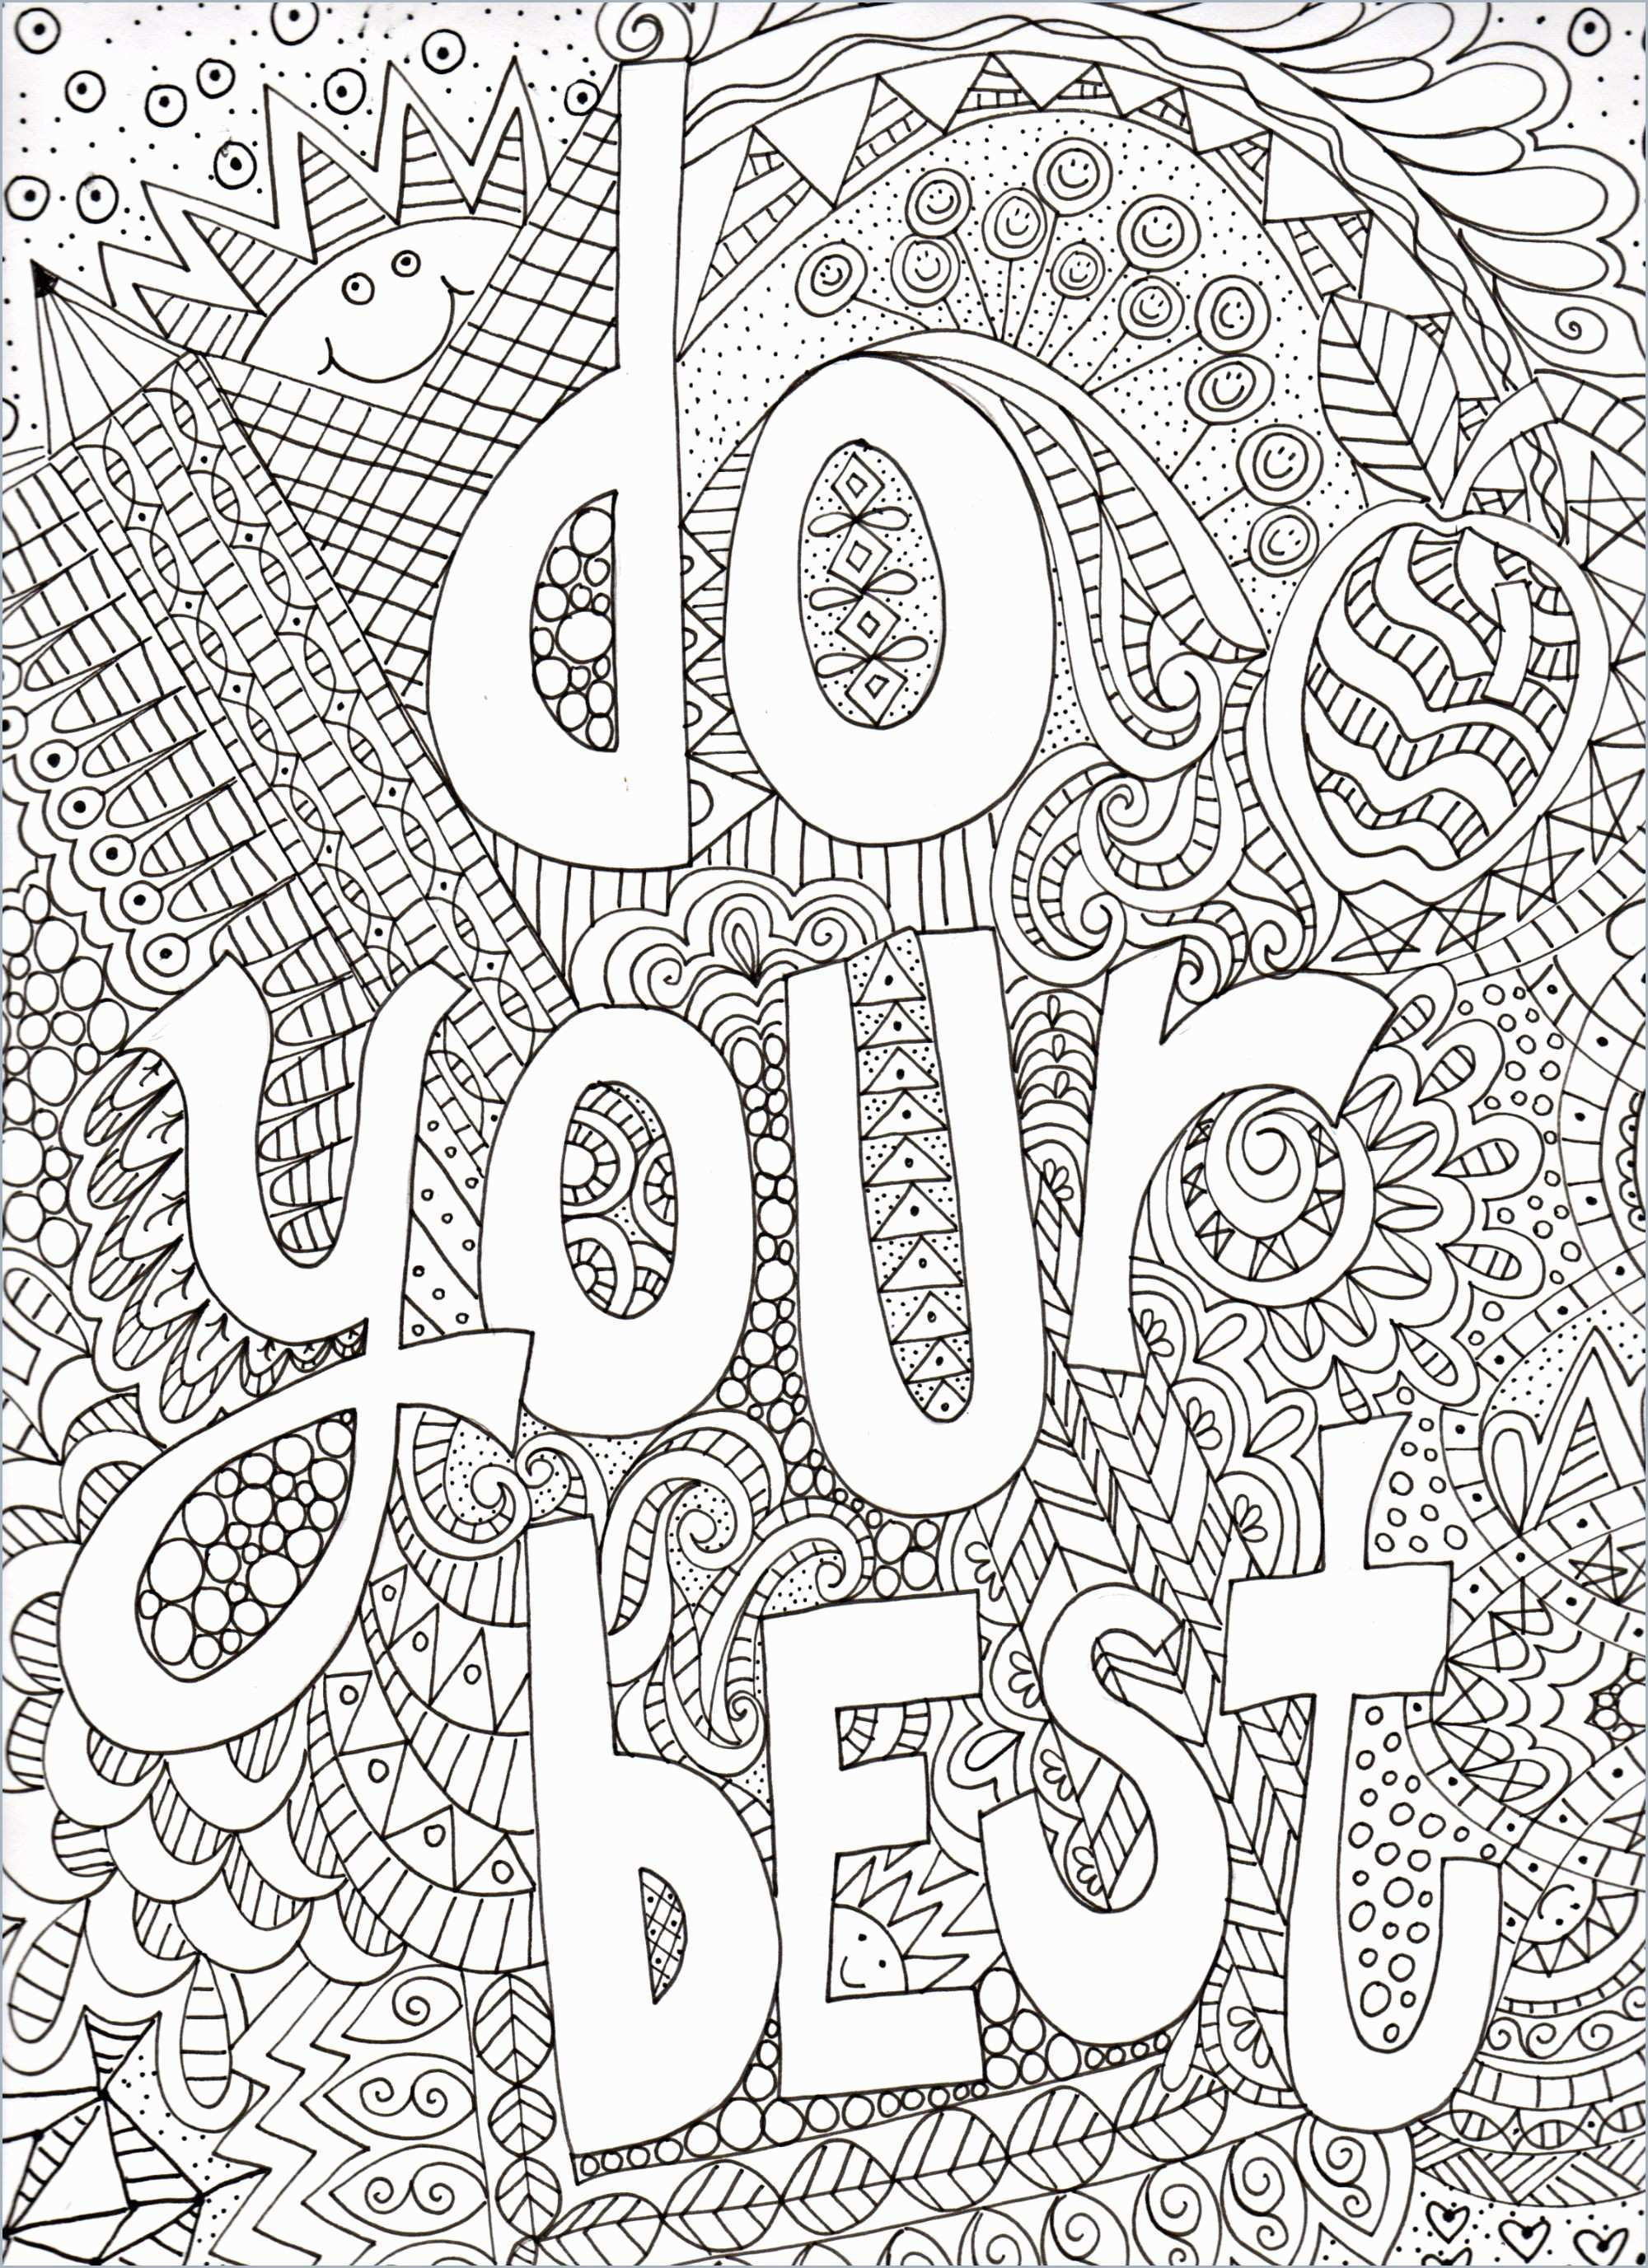 Cute Food Coloring Pages Cute Food Coloring Sheets Inspirational Doodle Coloring Book Cute I